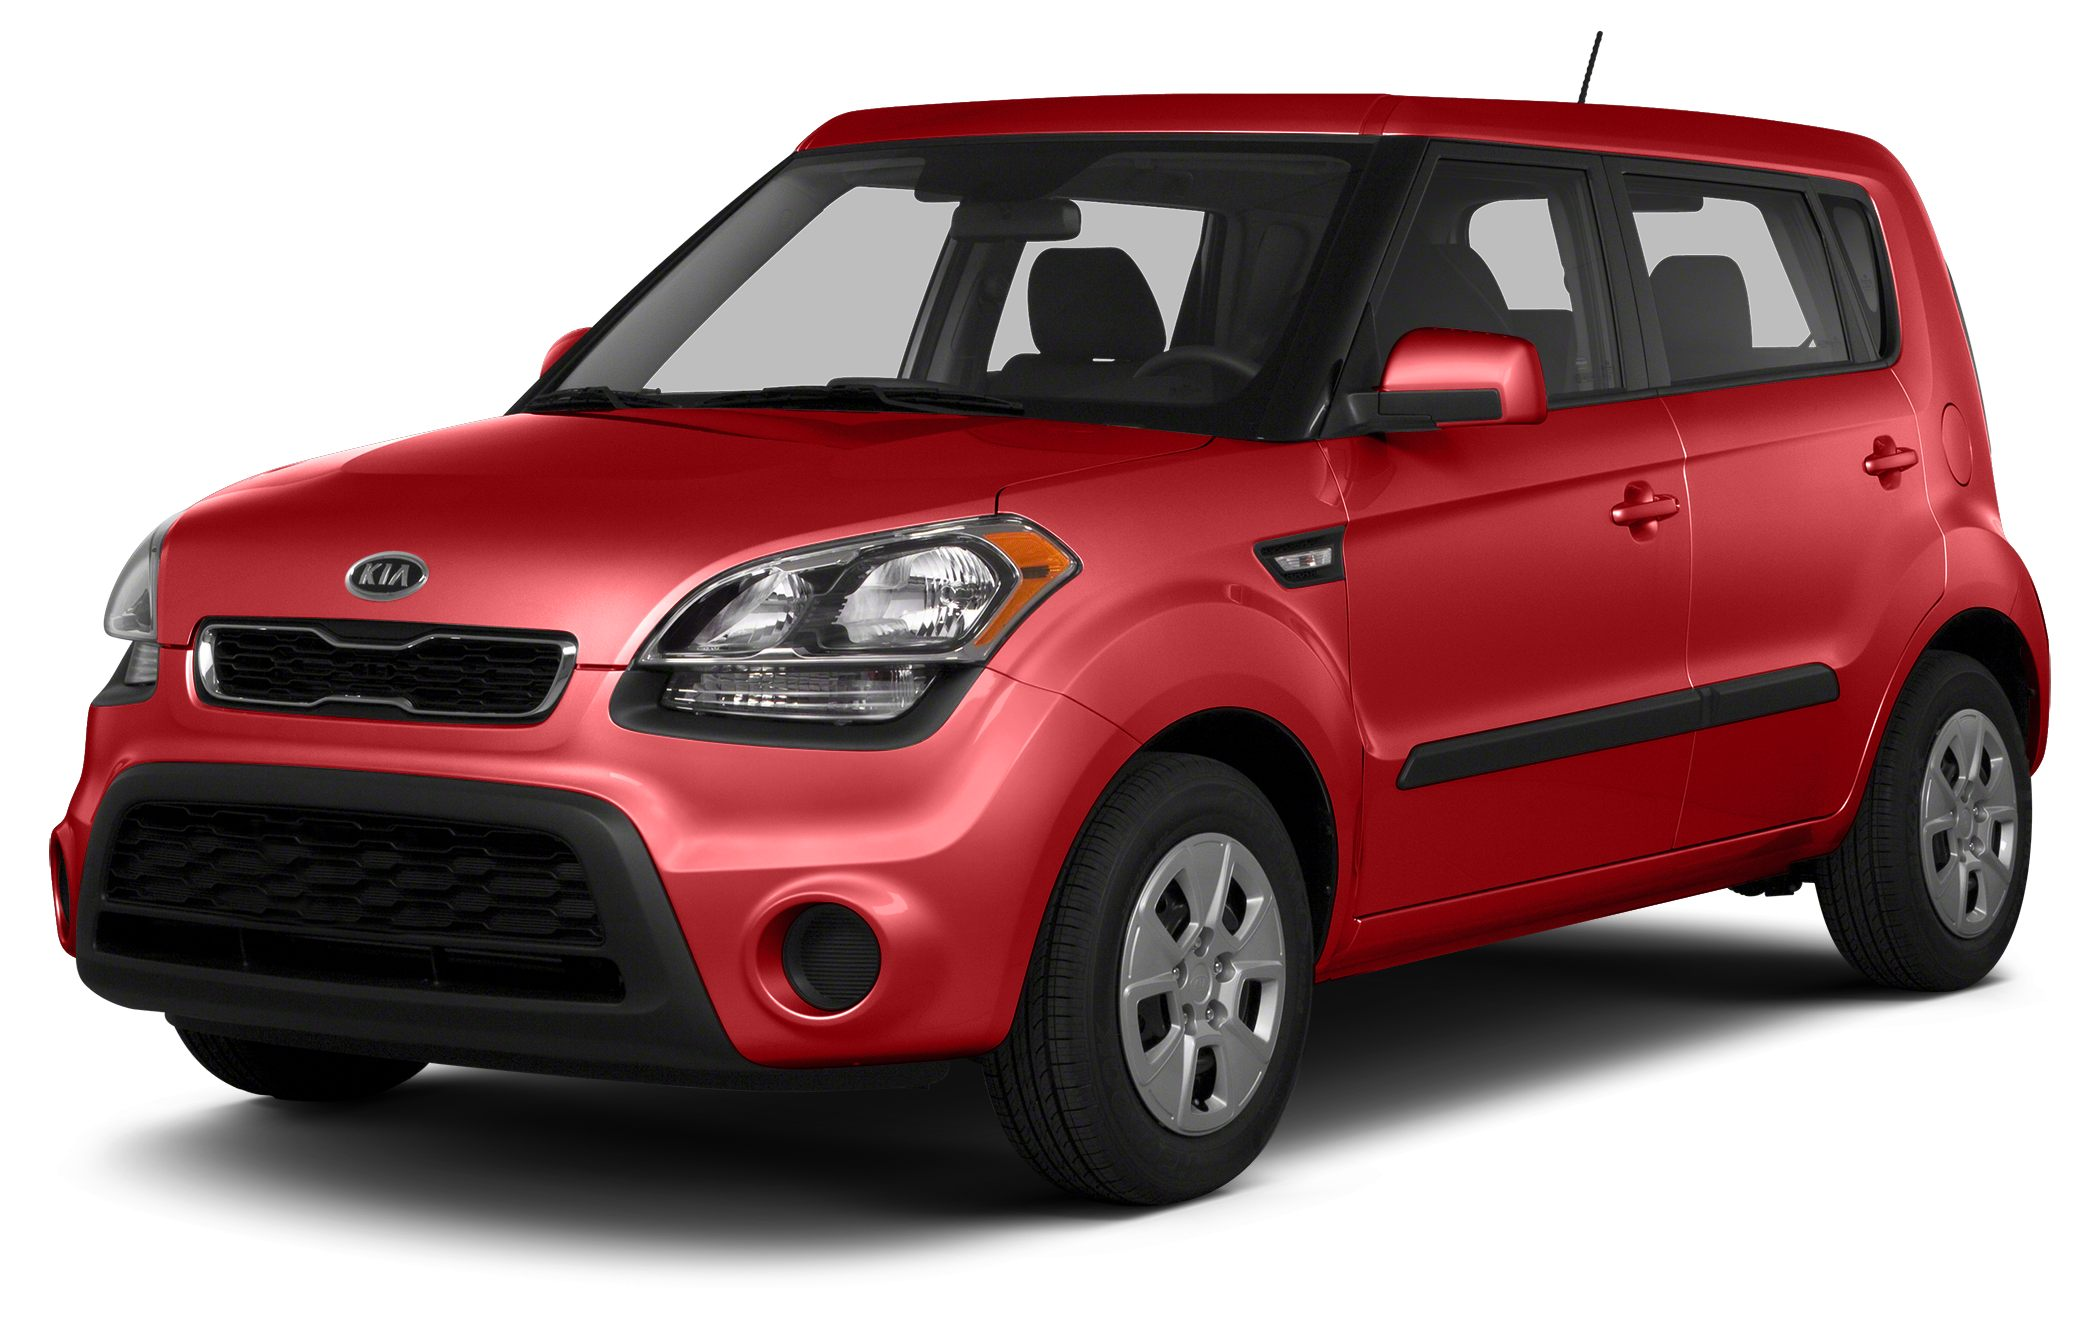 2013 Kia Soul Base Outstanding design defines the 2013 Kia Soul It offers the latest in technolog